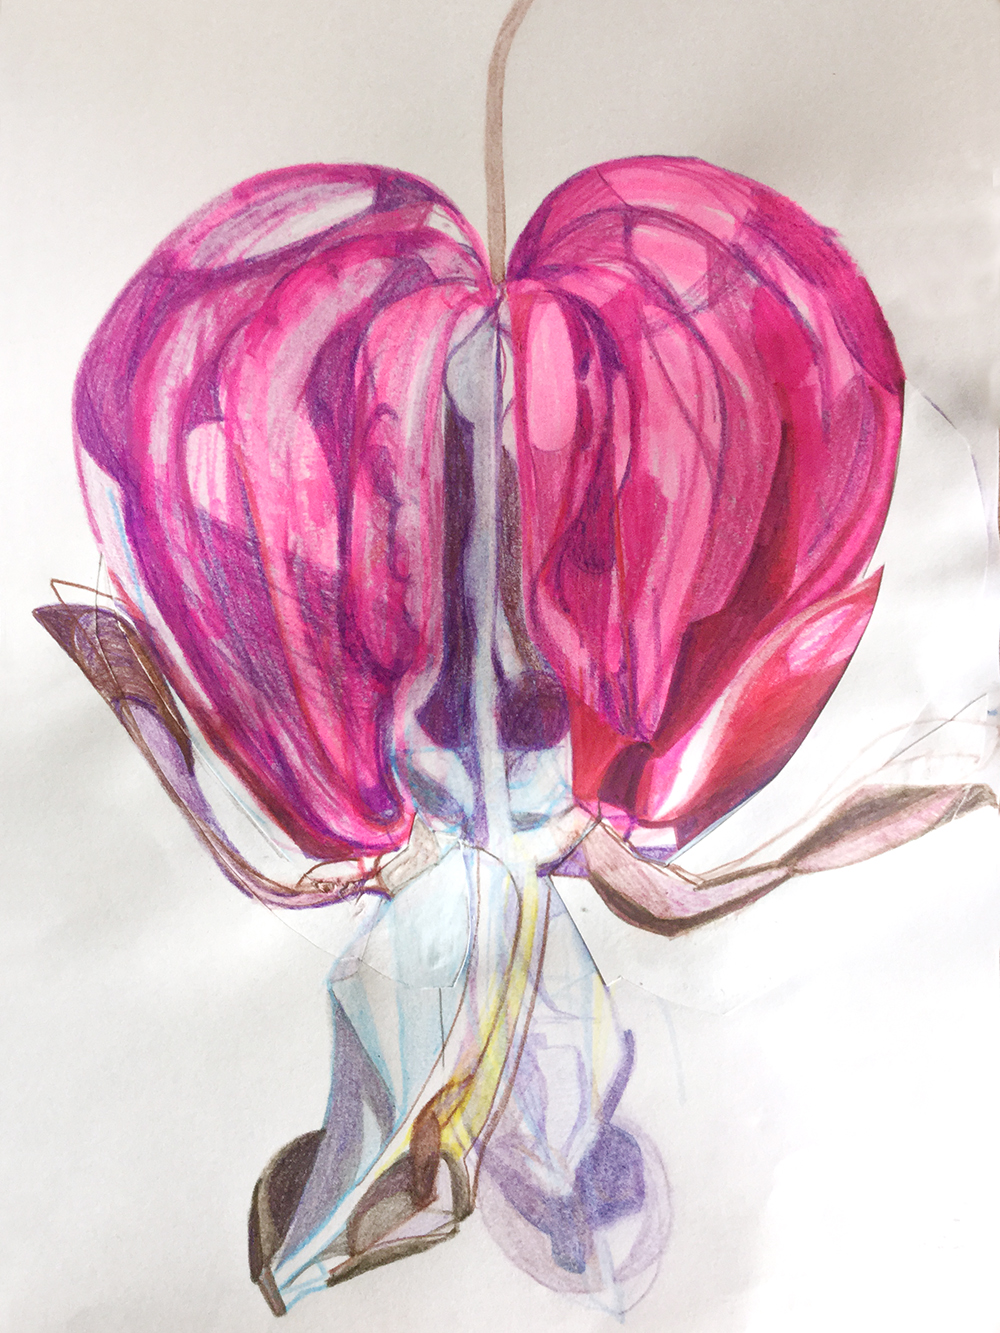 Bleeding Heart (Brockwell Park) study